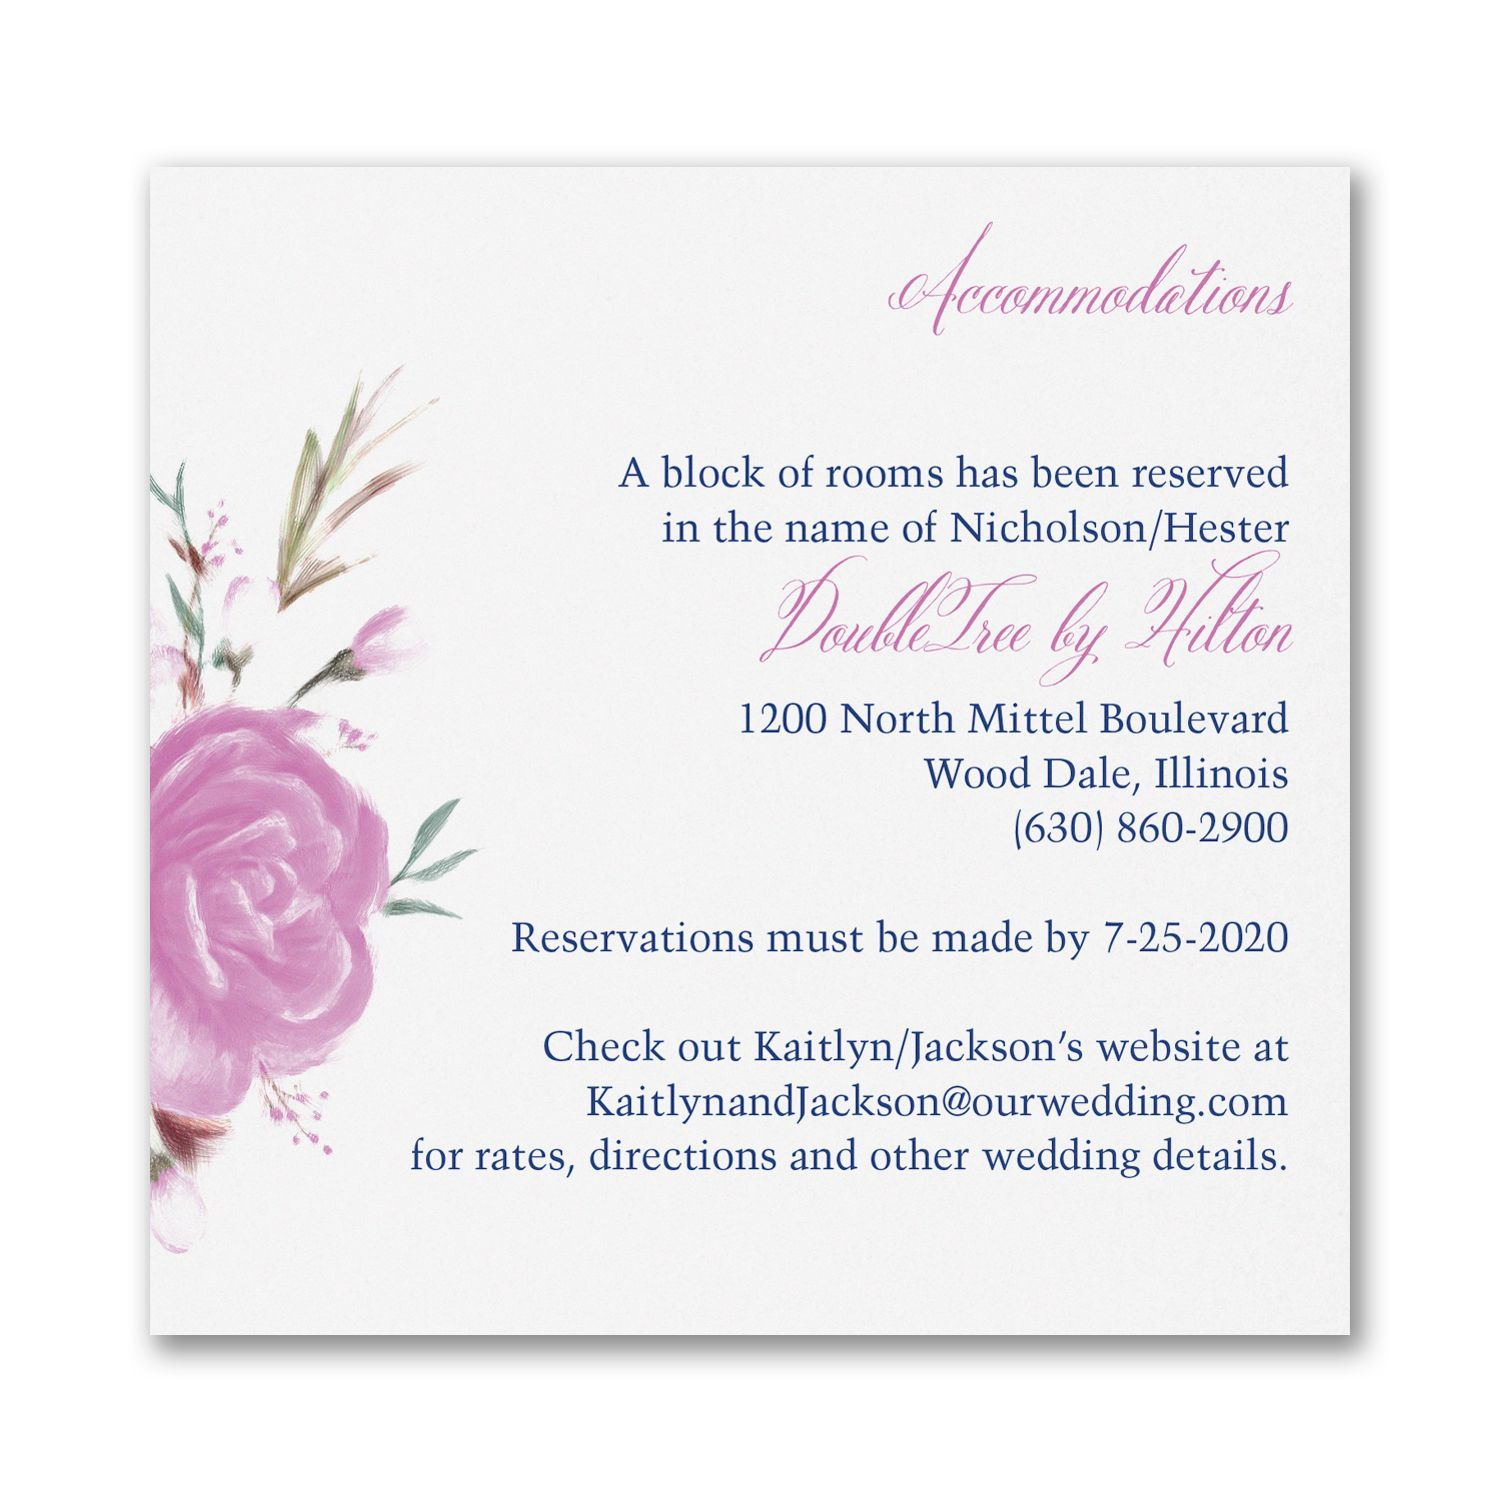 Enchanted Garden - Floral - Accommodation Card. Available at ...